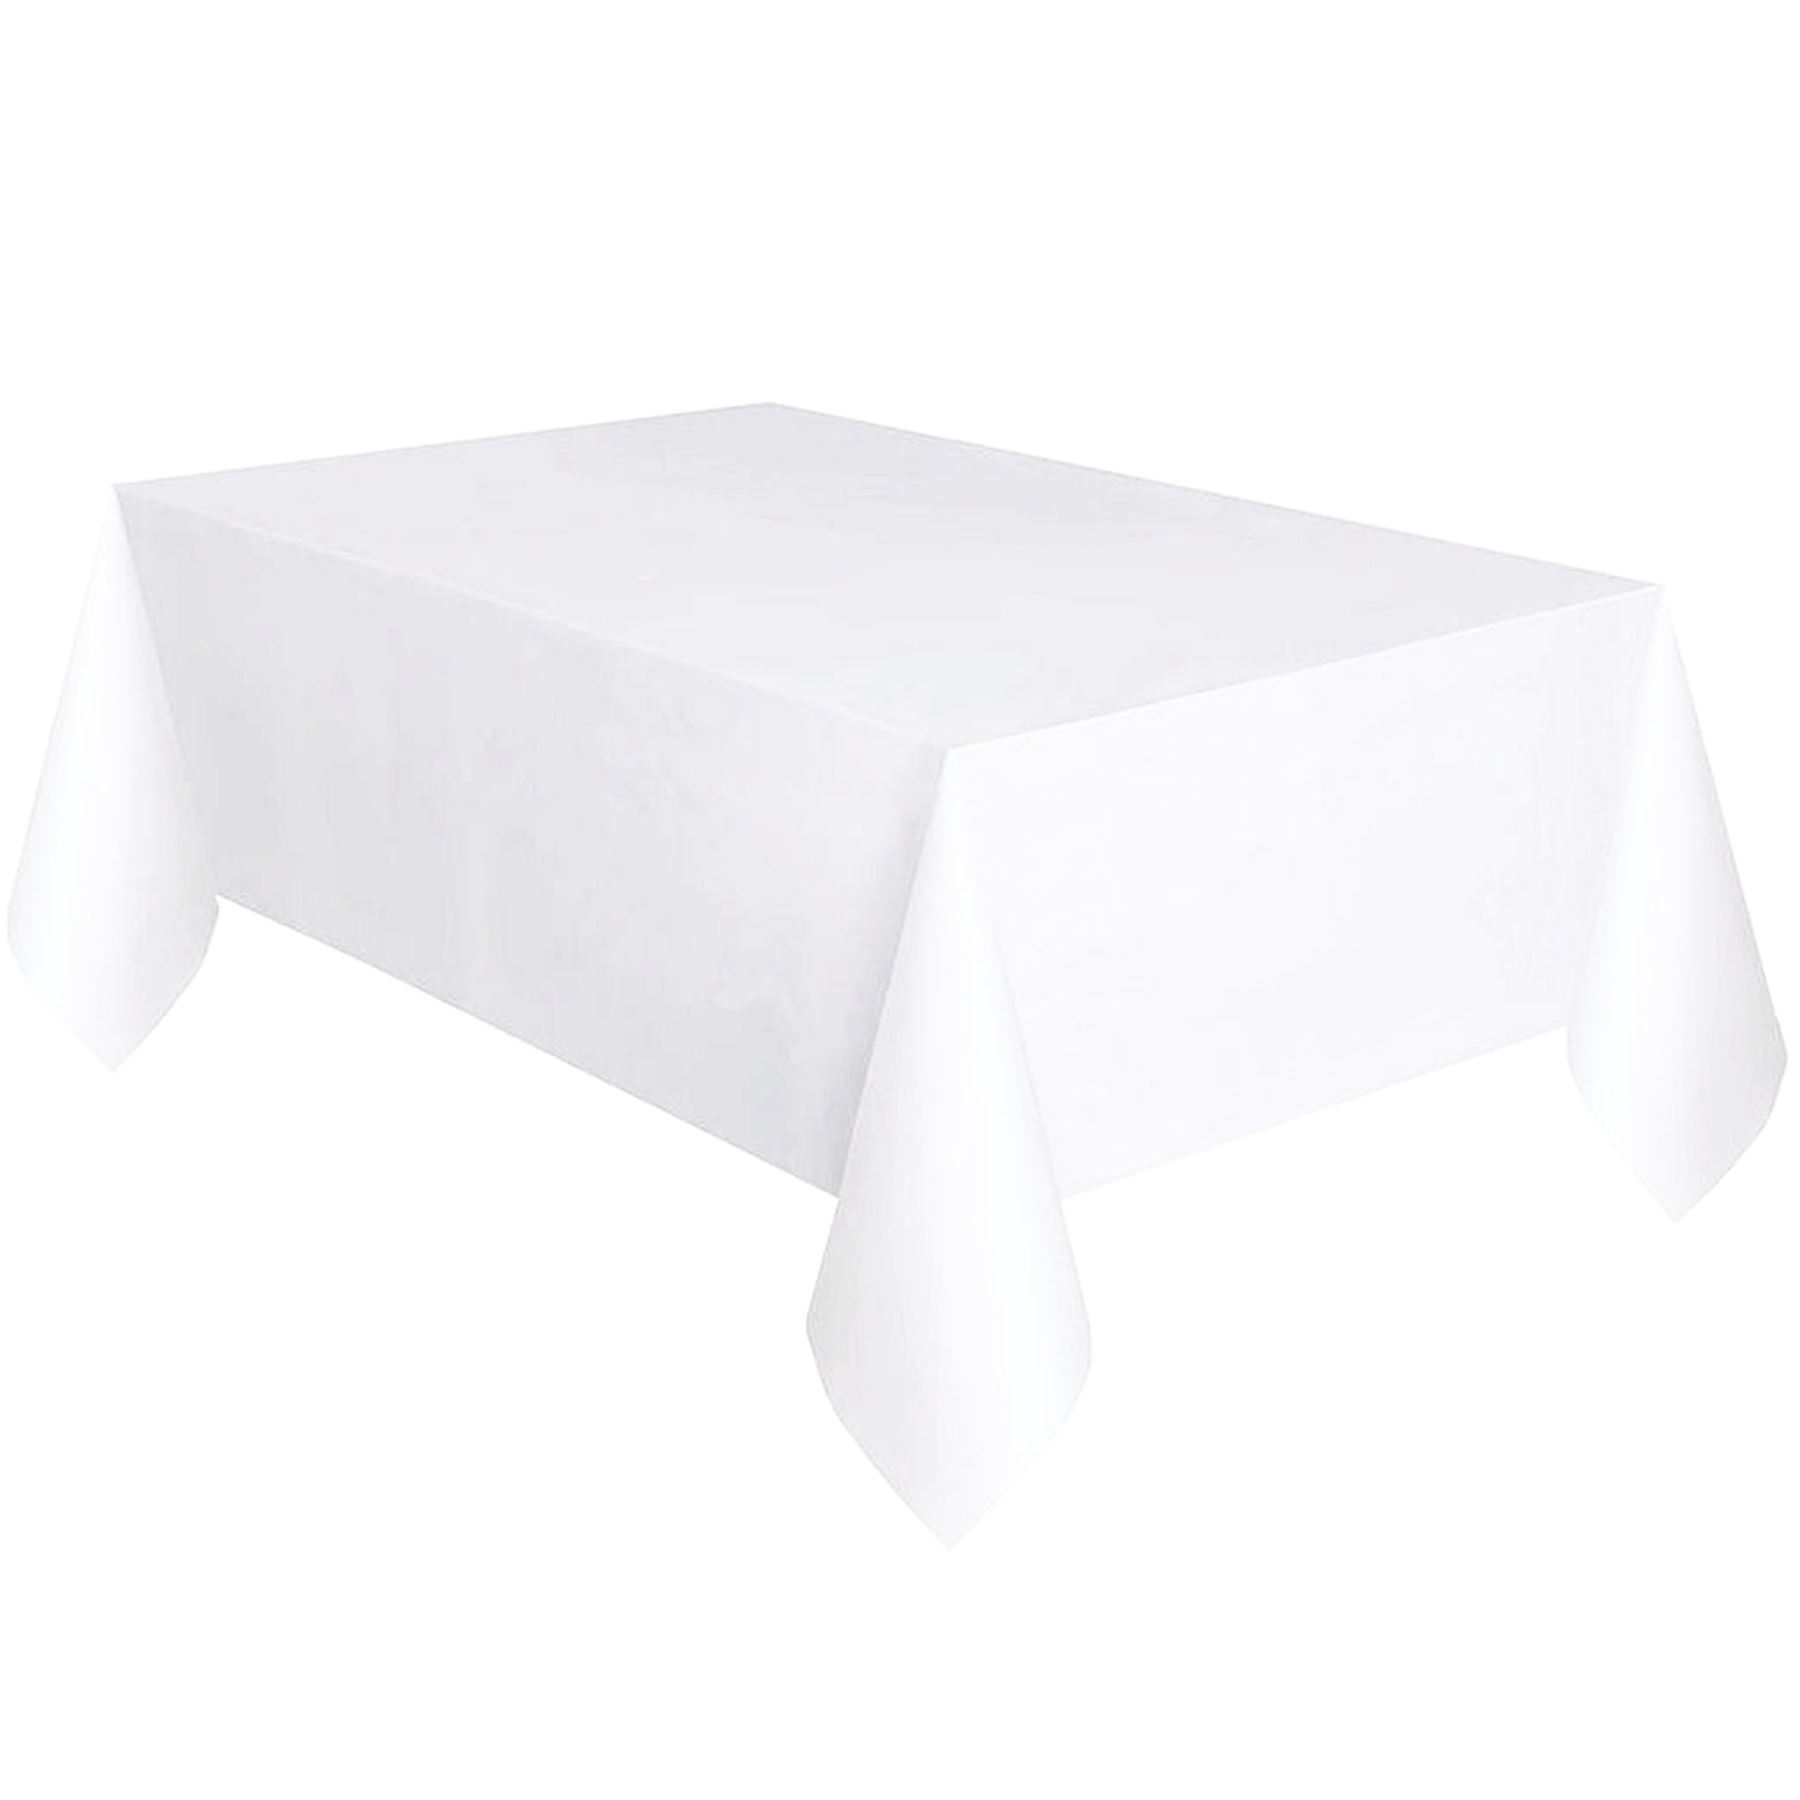 Square Tablecloth Plastic Table Cover Cloth Wipe Clean Party Square